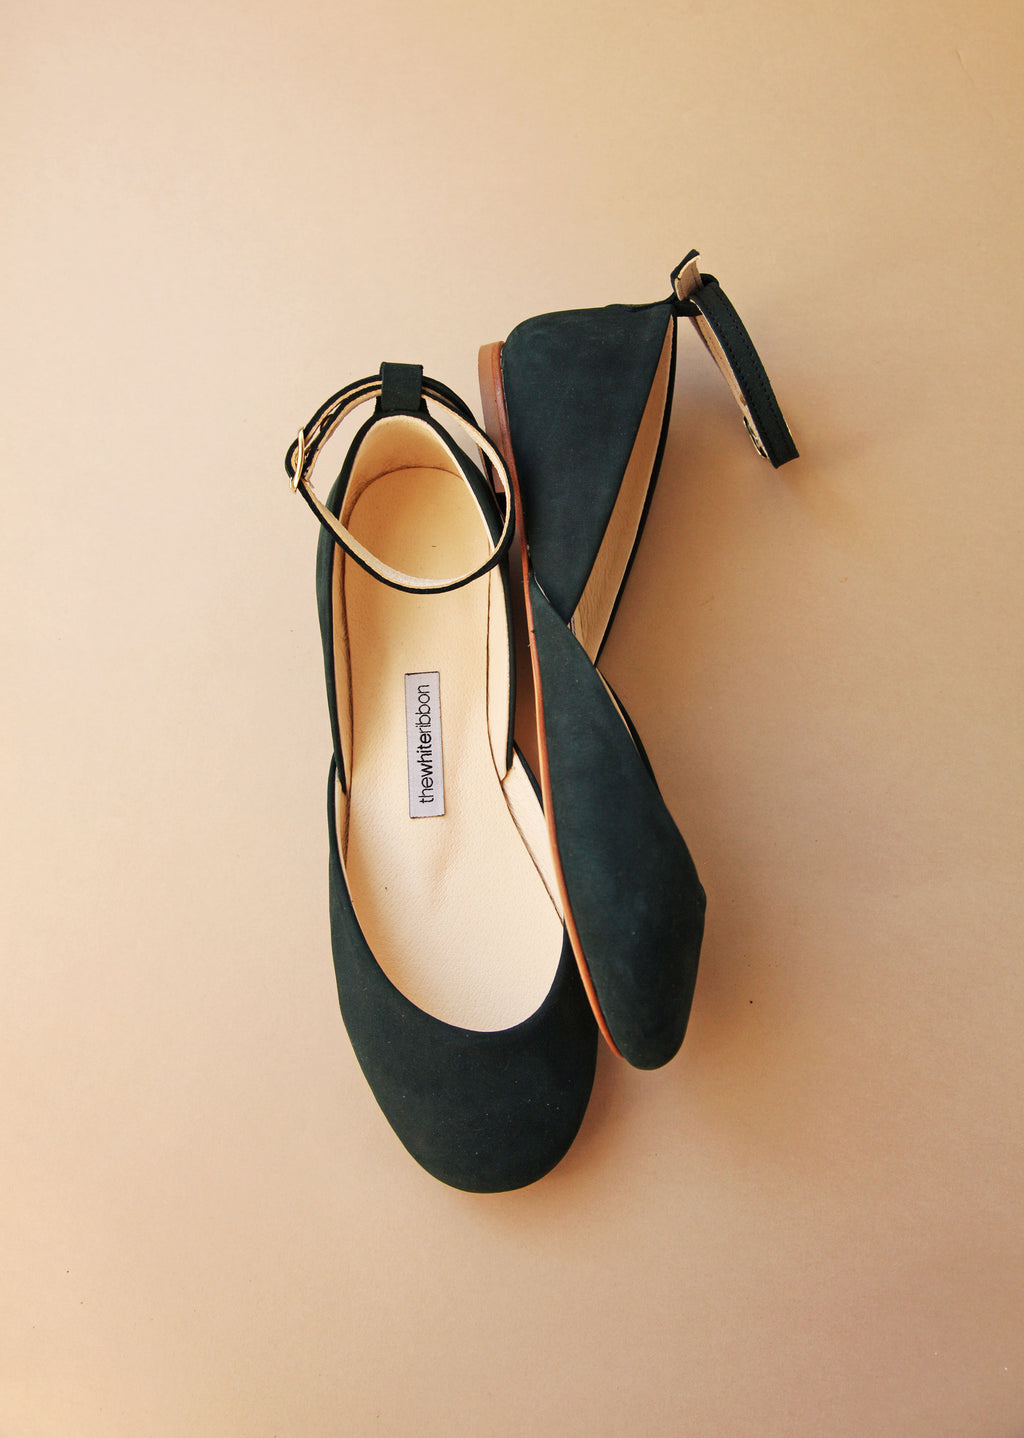 dark green ballet flats with matching ankle straps from side and top on pastel background